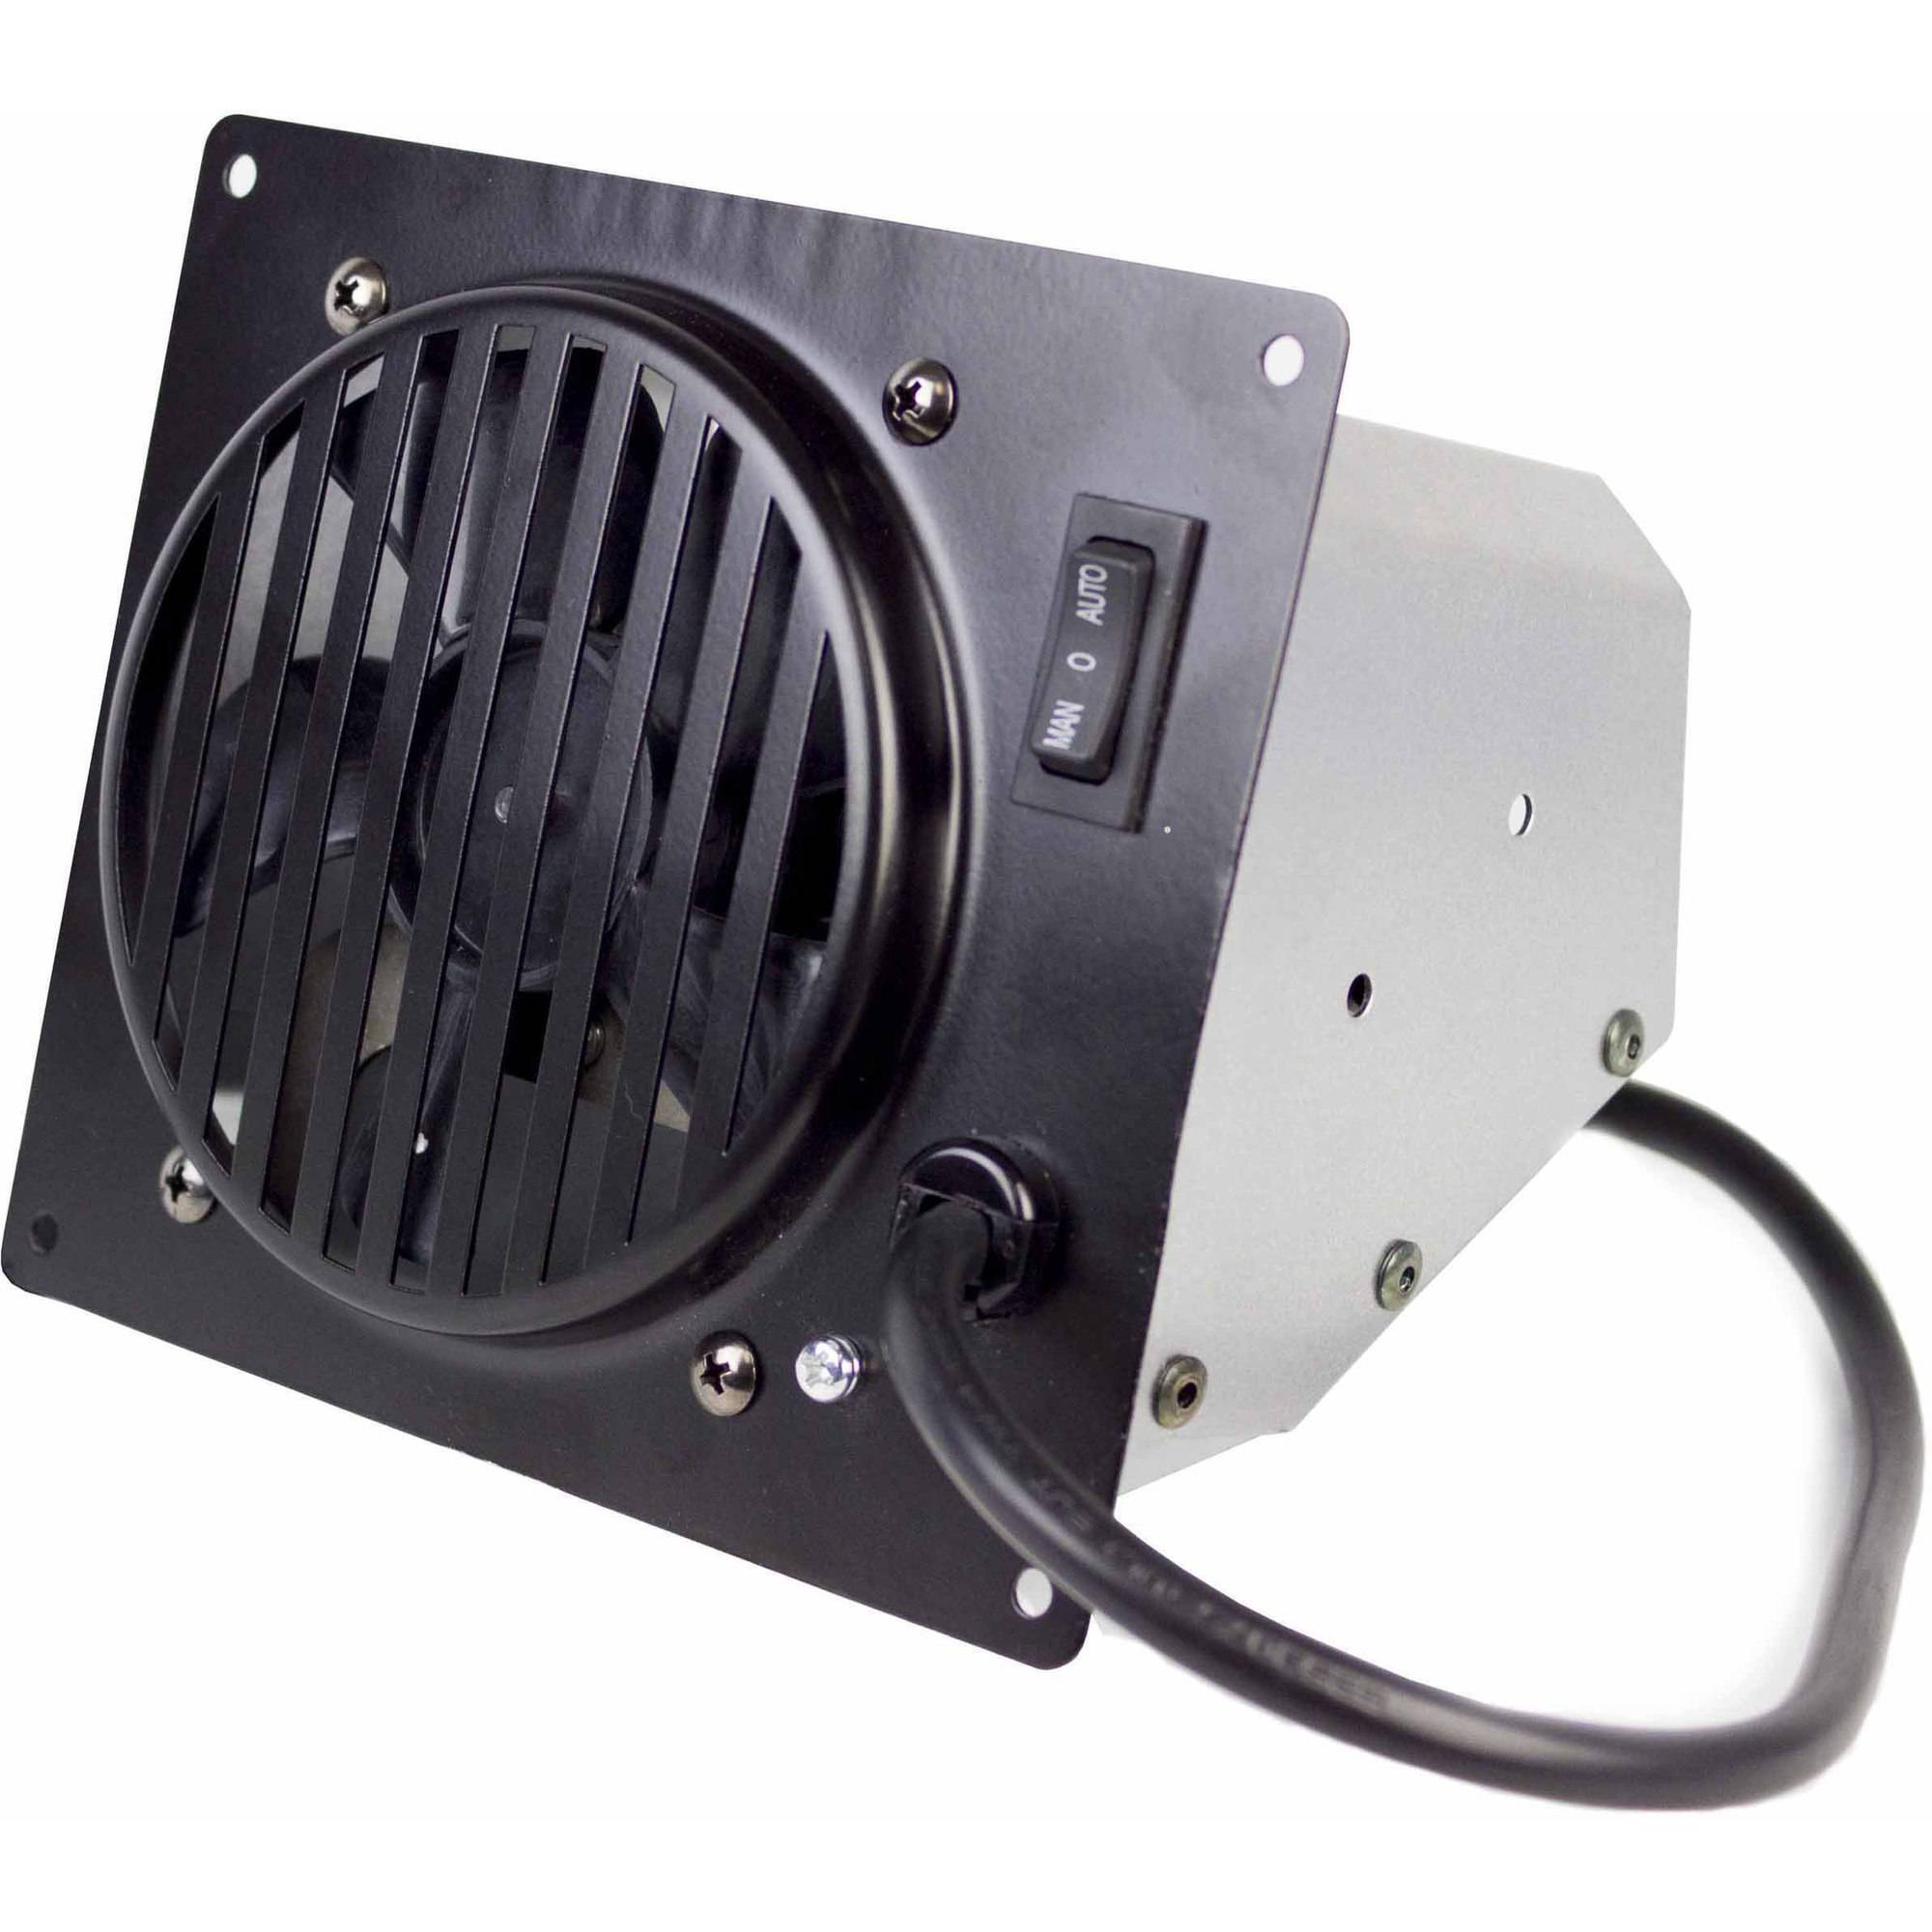 Dyna-Glo WHF100 Vent-Free Wall Heater Fan